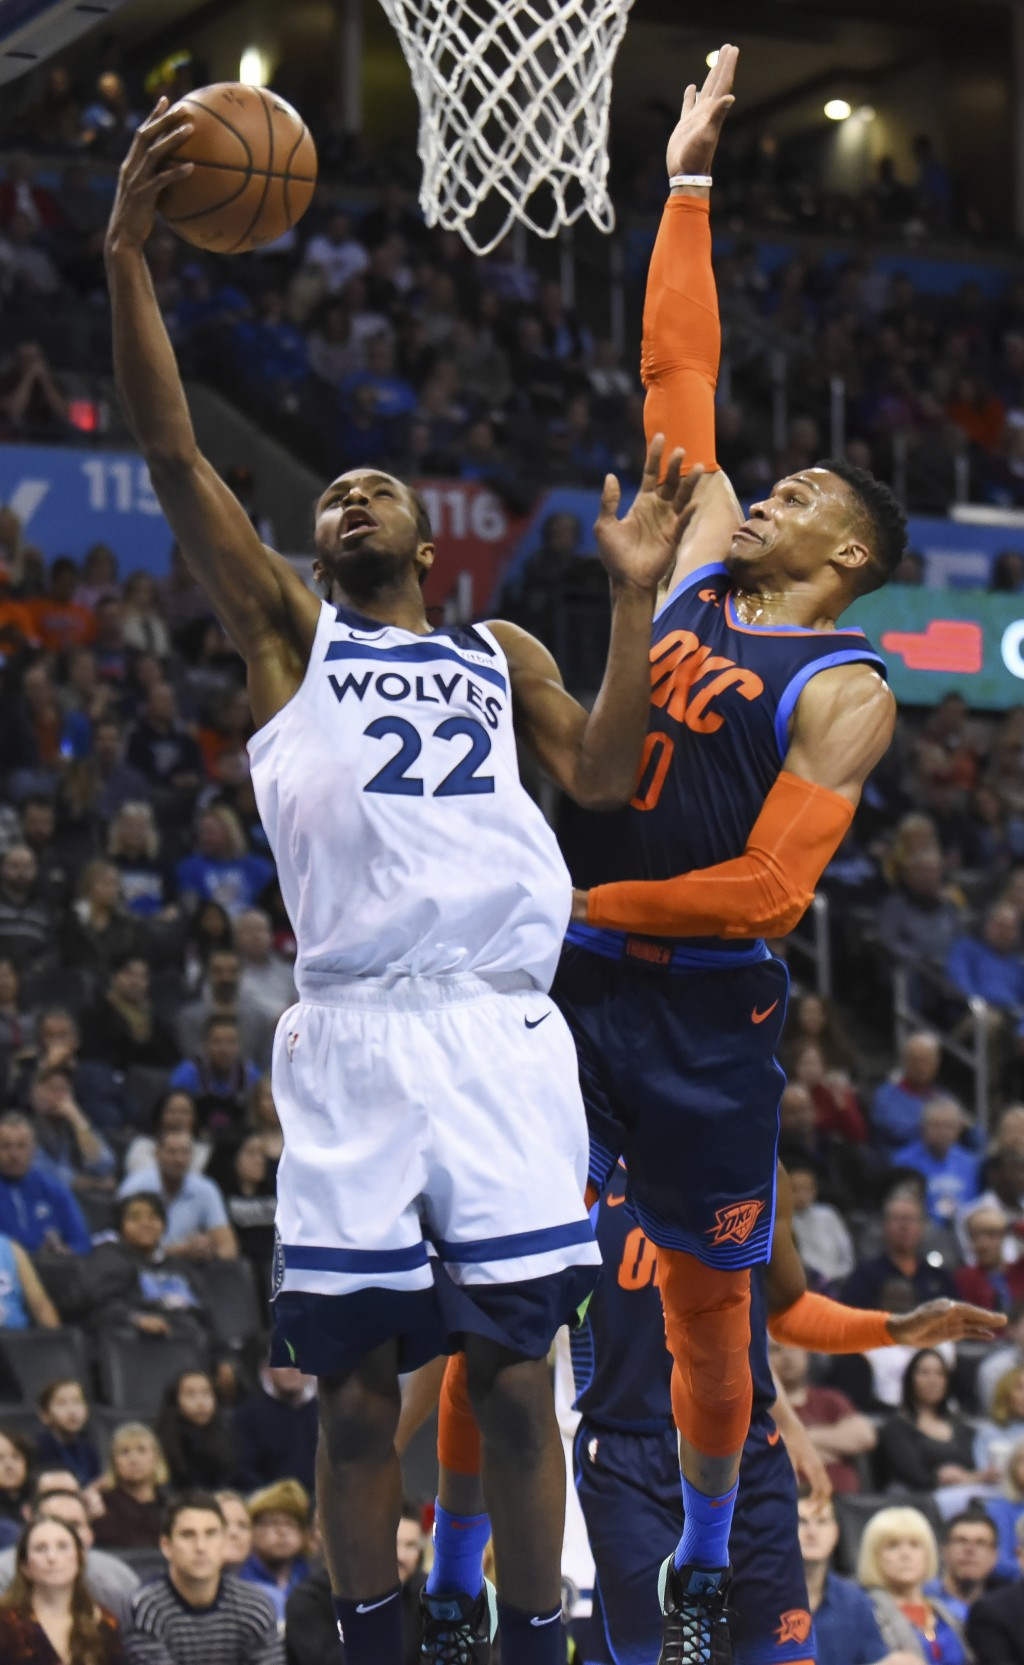 Oklahoma City Thunder guard Russell Wesbrook (0) tries to block a shot by Minnesota Timberwolves guard Andrew Wiggins (22) in the first half of an NBA